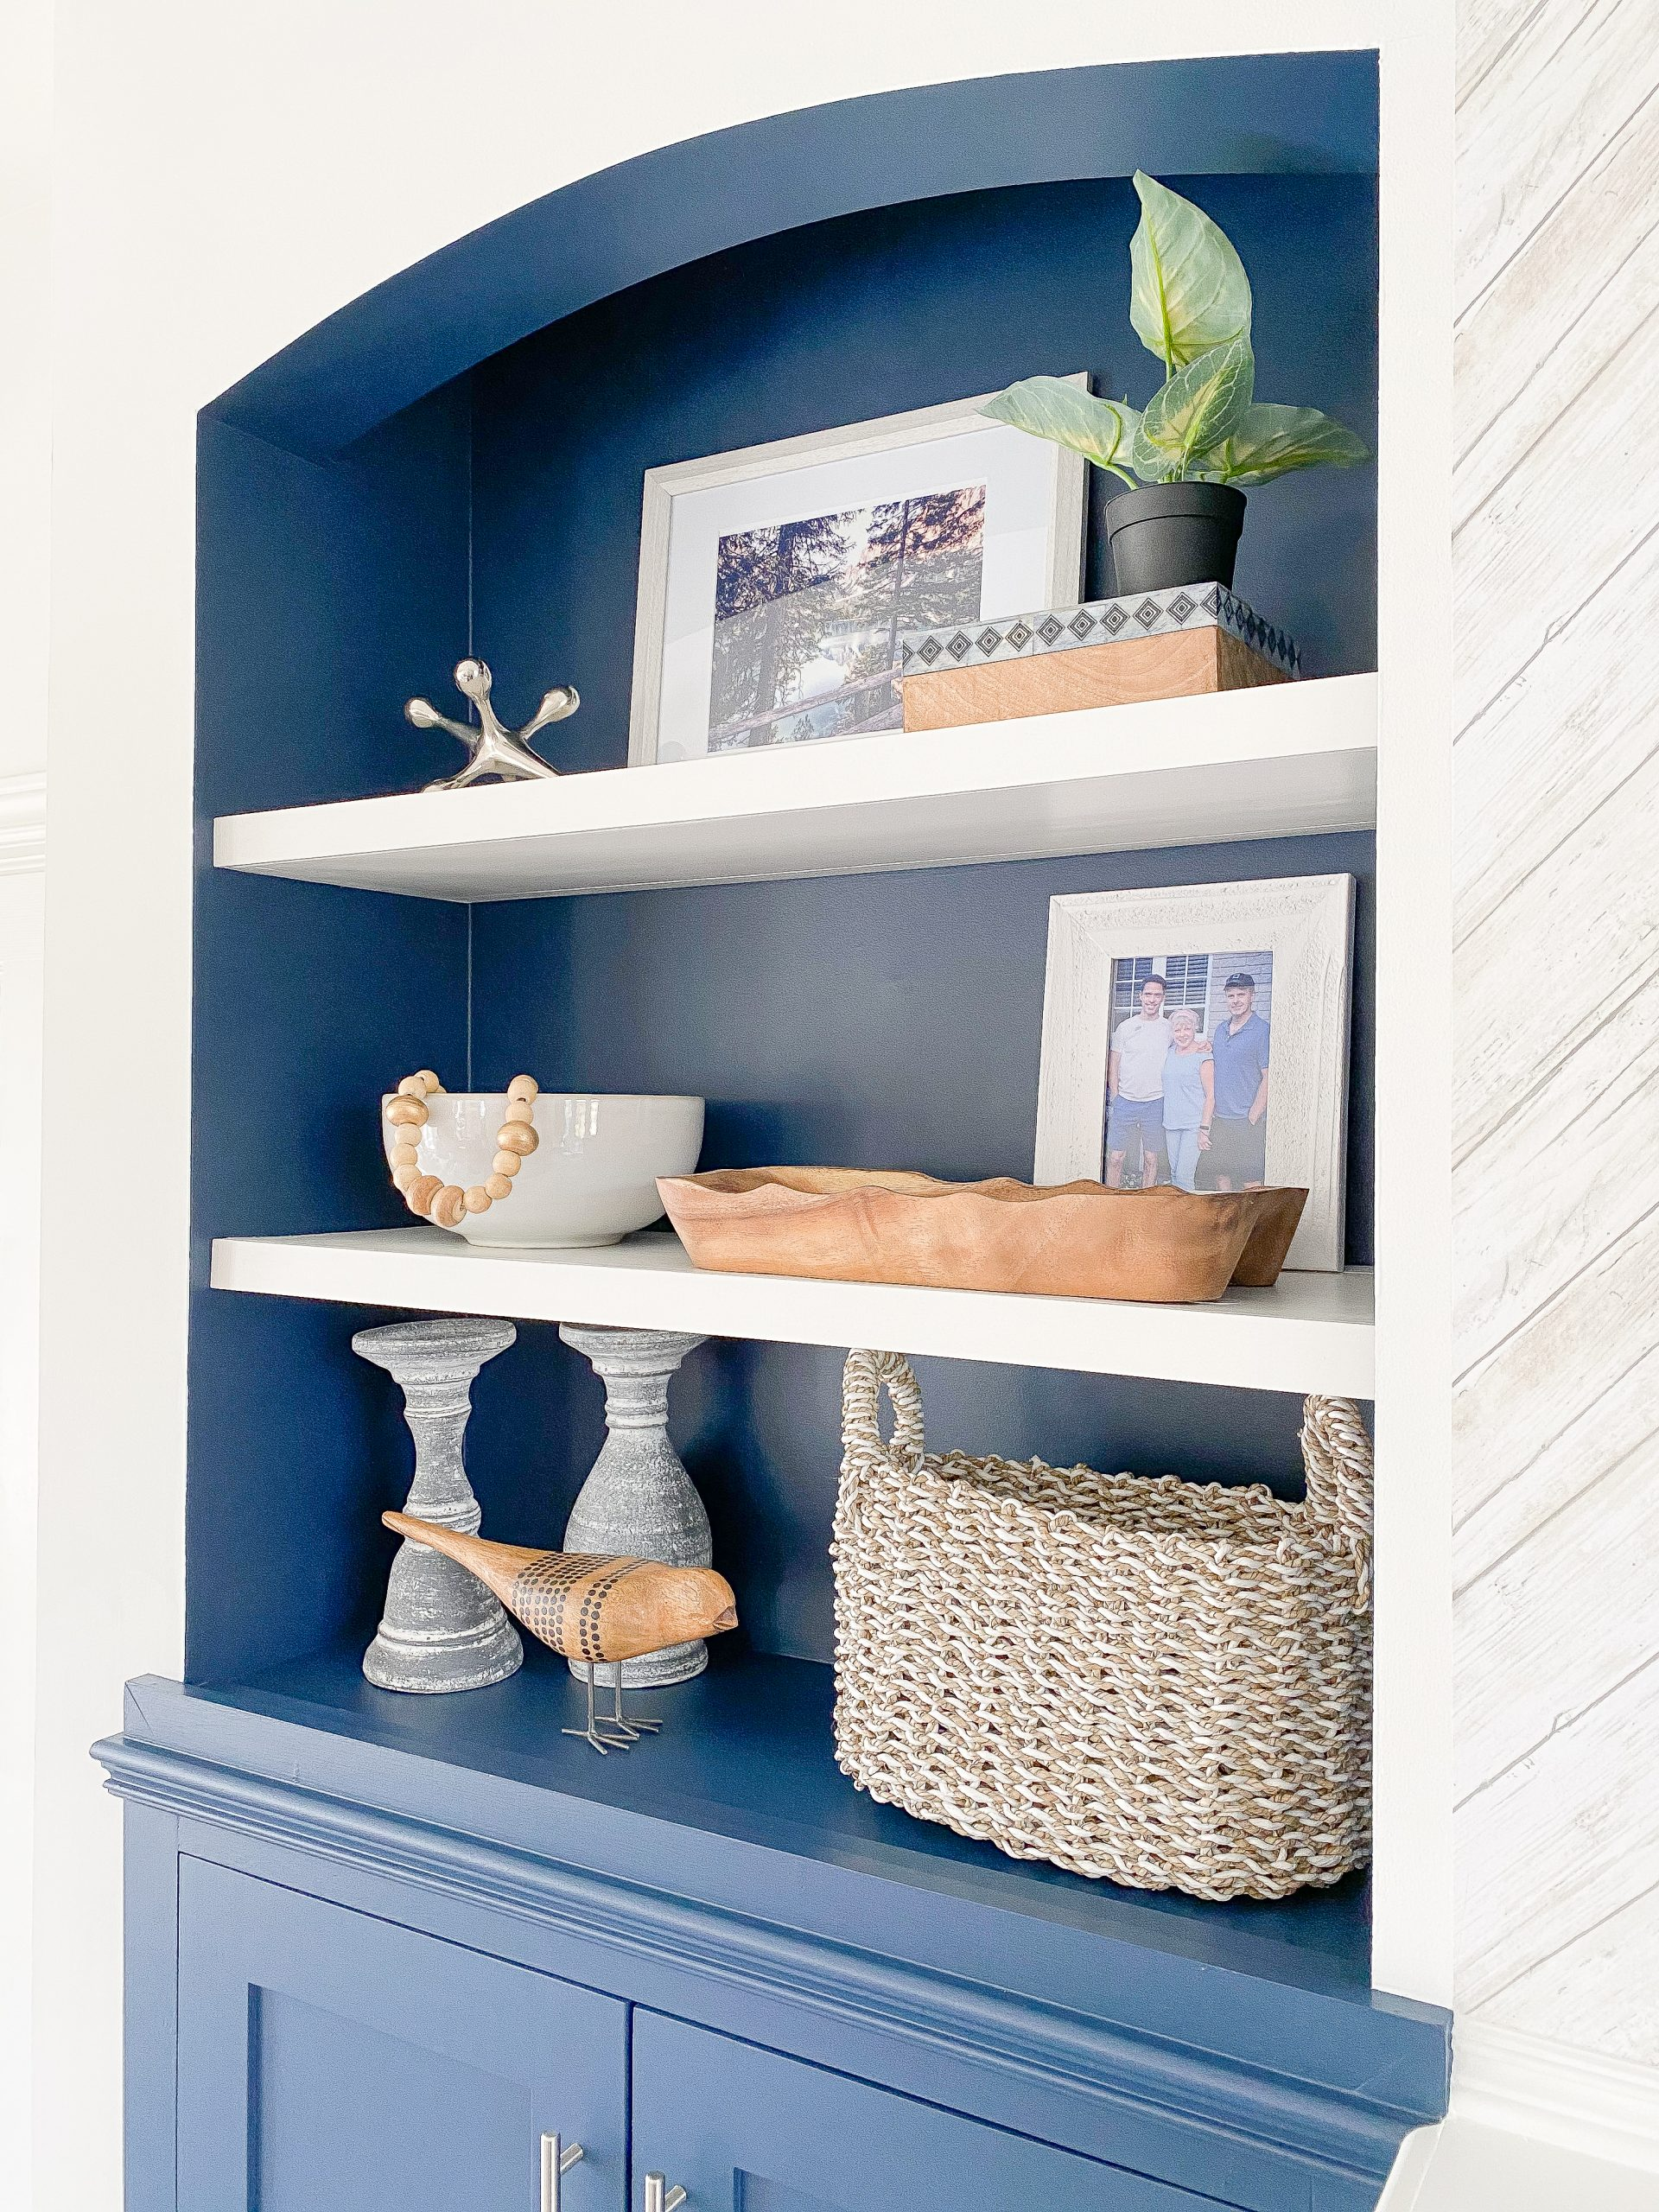 Styling a bookshelf with wood and wicker accessories at a lakeside retreat in Chatham Ontario